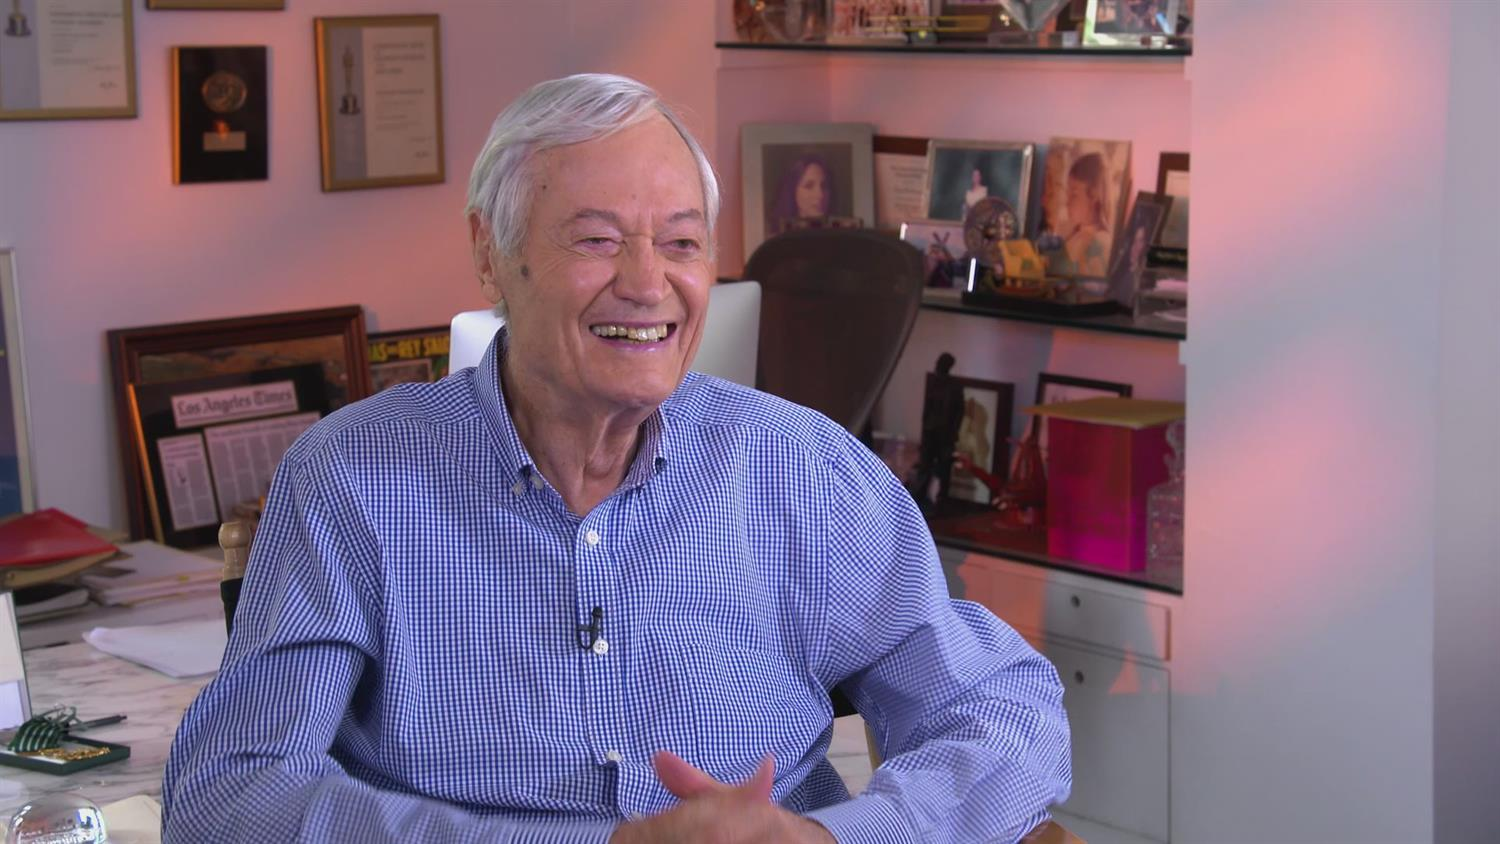 Roger Corman on Working with Han Solo's Ron Howard